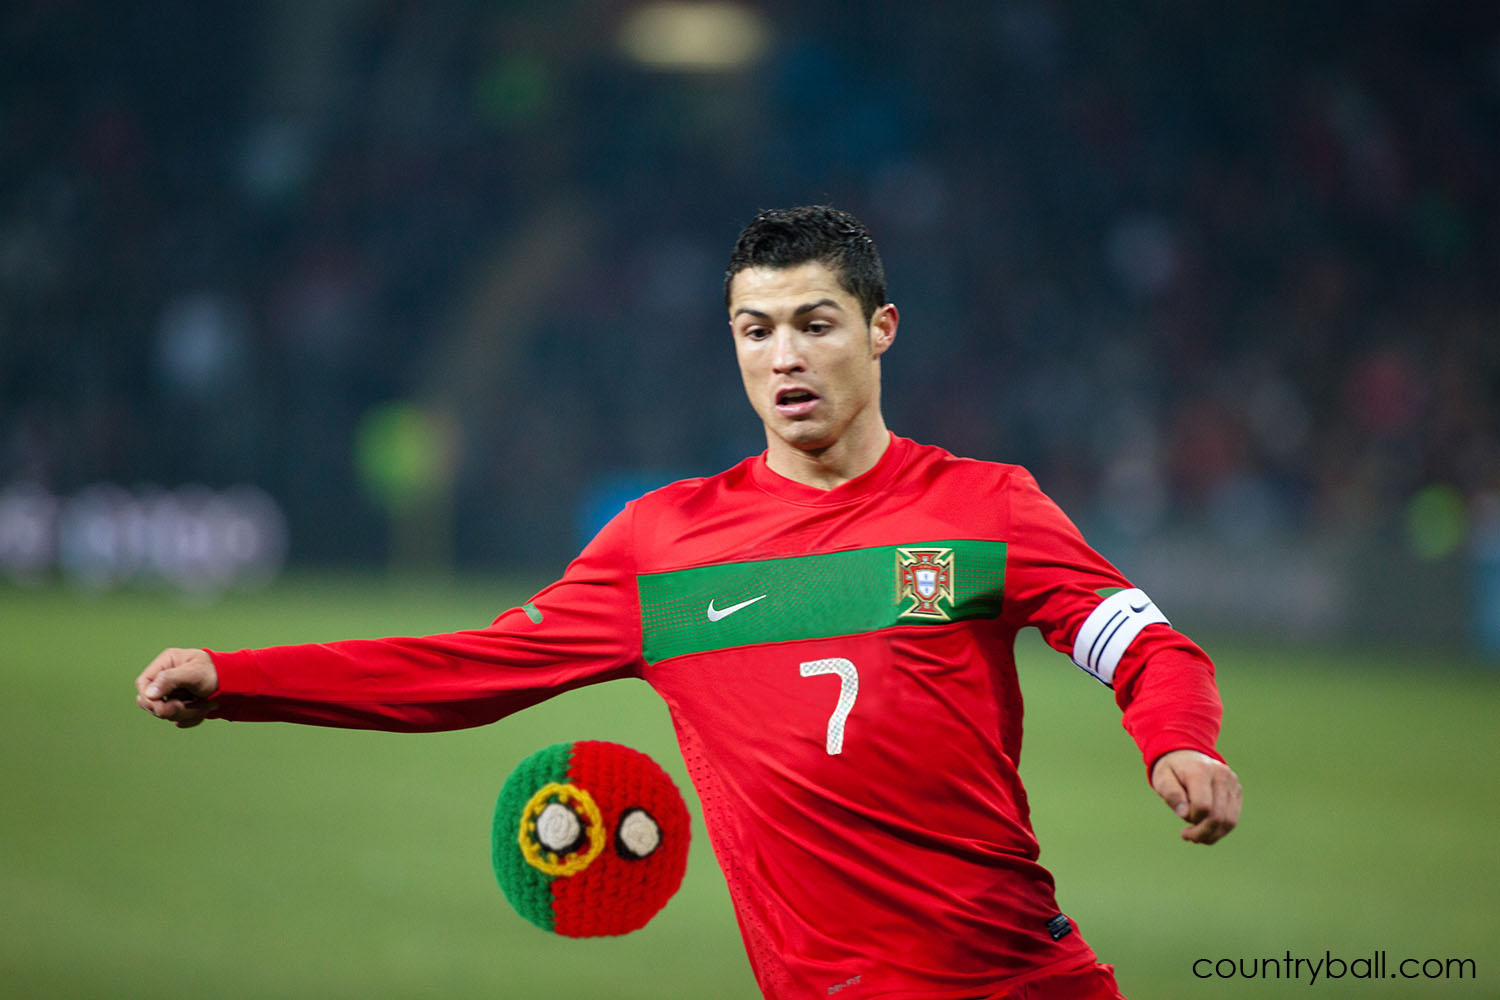 Cristiano Ronaldo playing with his Portugalball